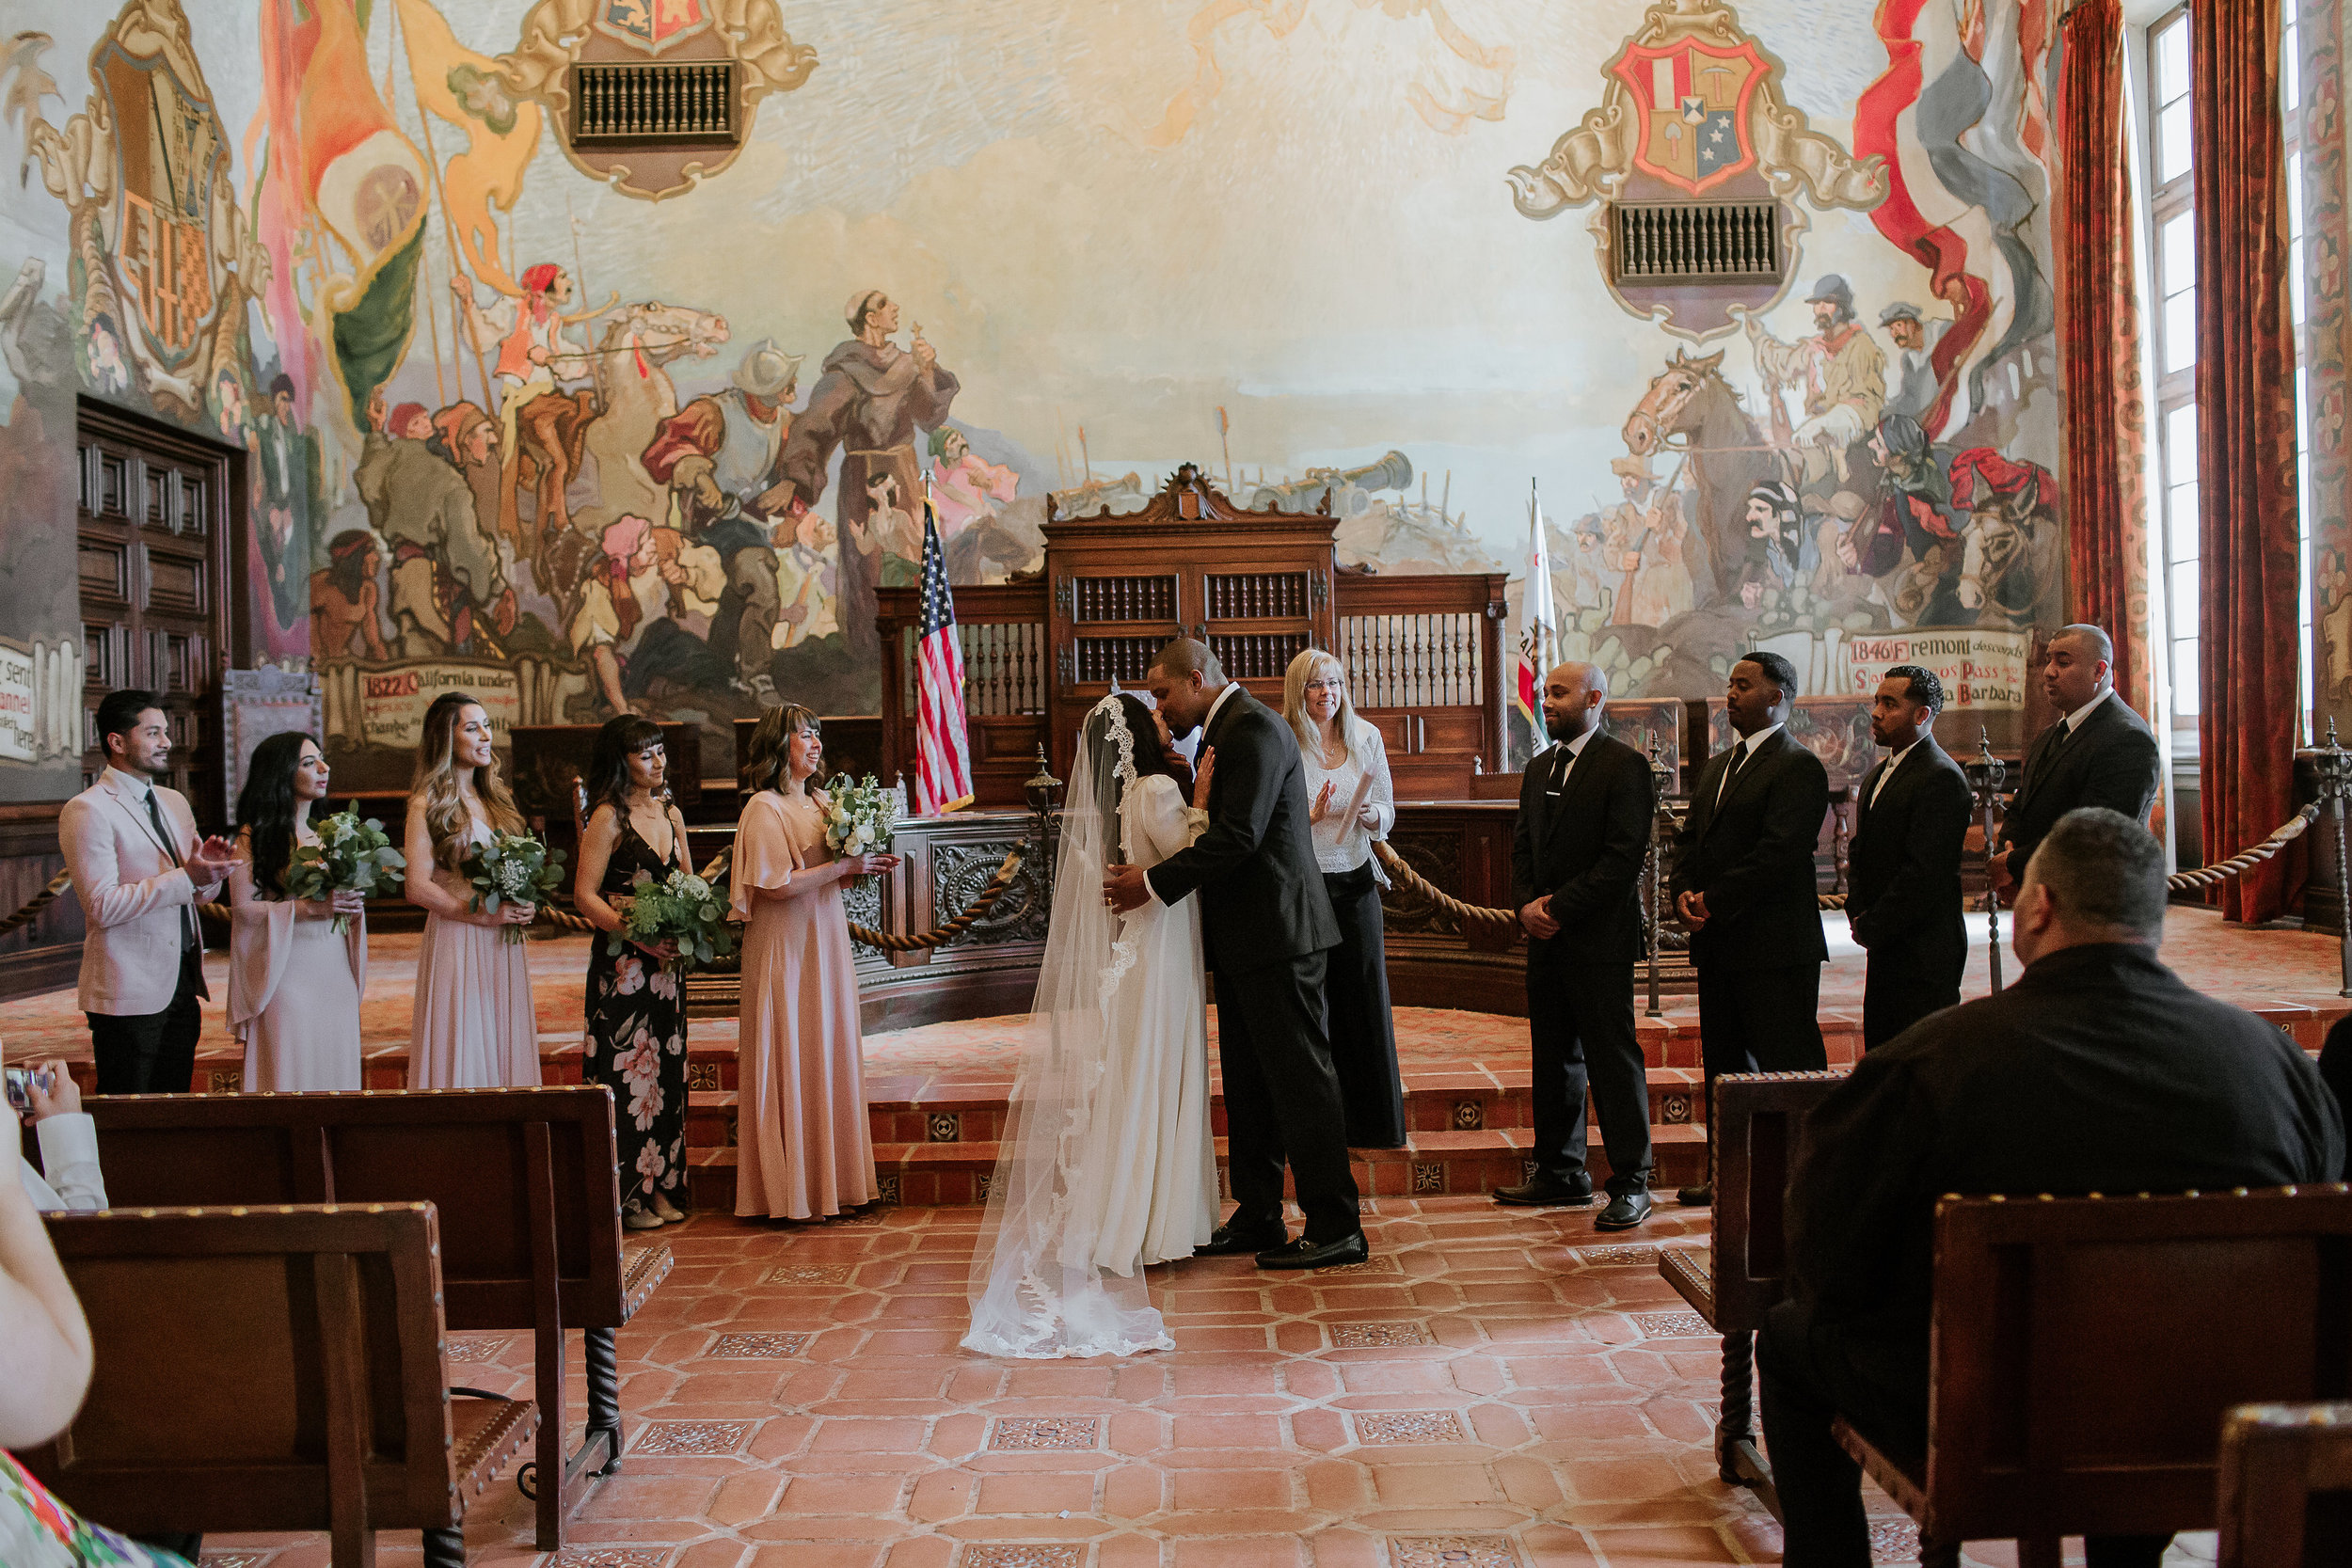 GabrielaandDeJuansantabarbaracourthouseweddingstellamaresweddingelopement-174.jpg